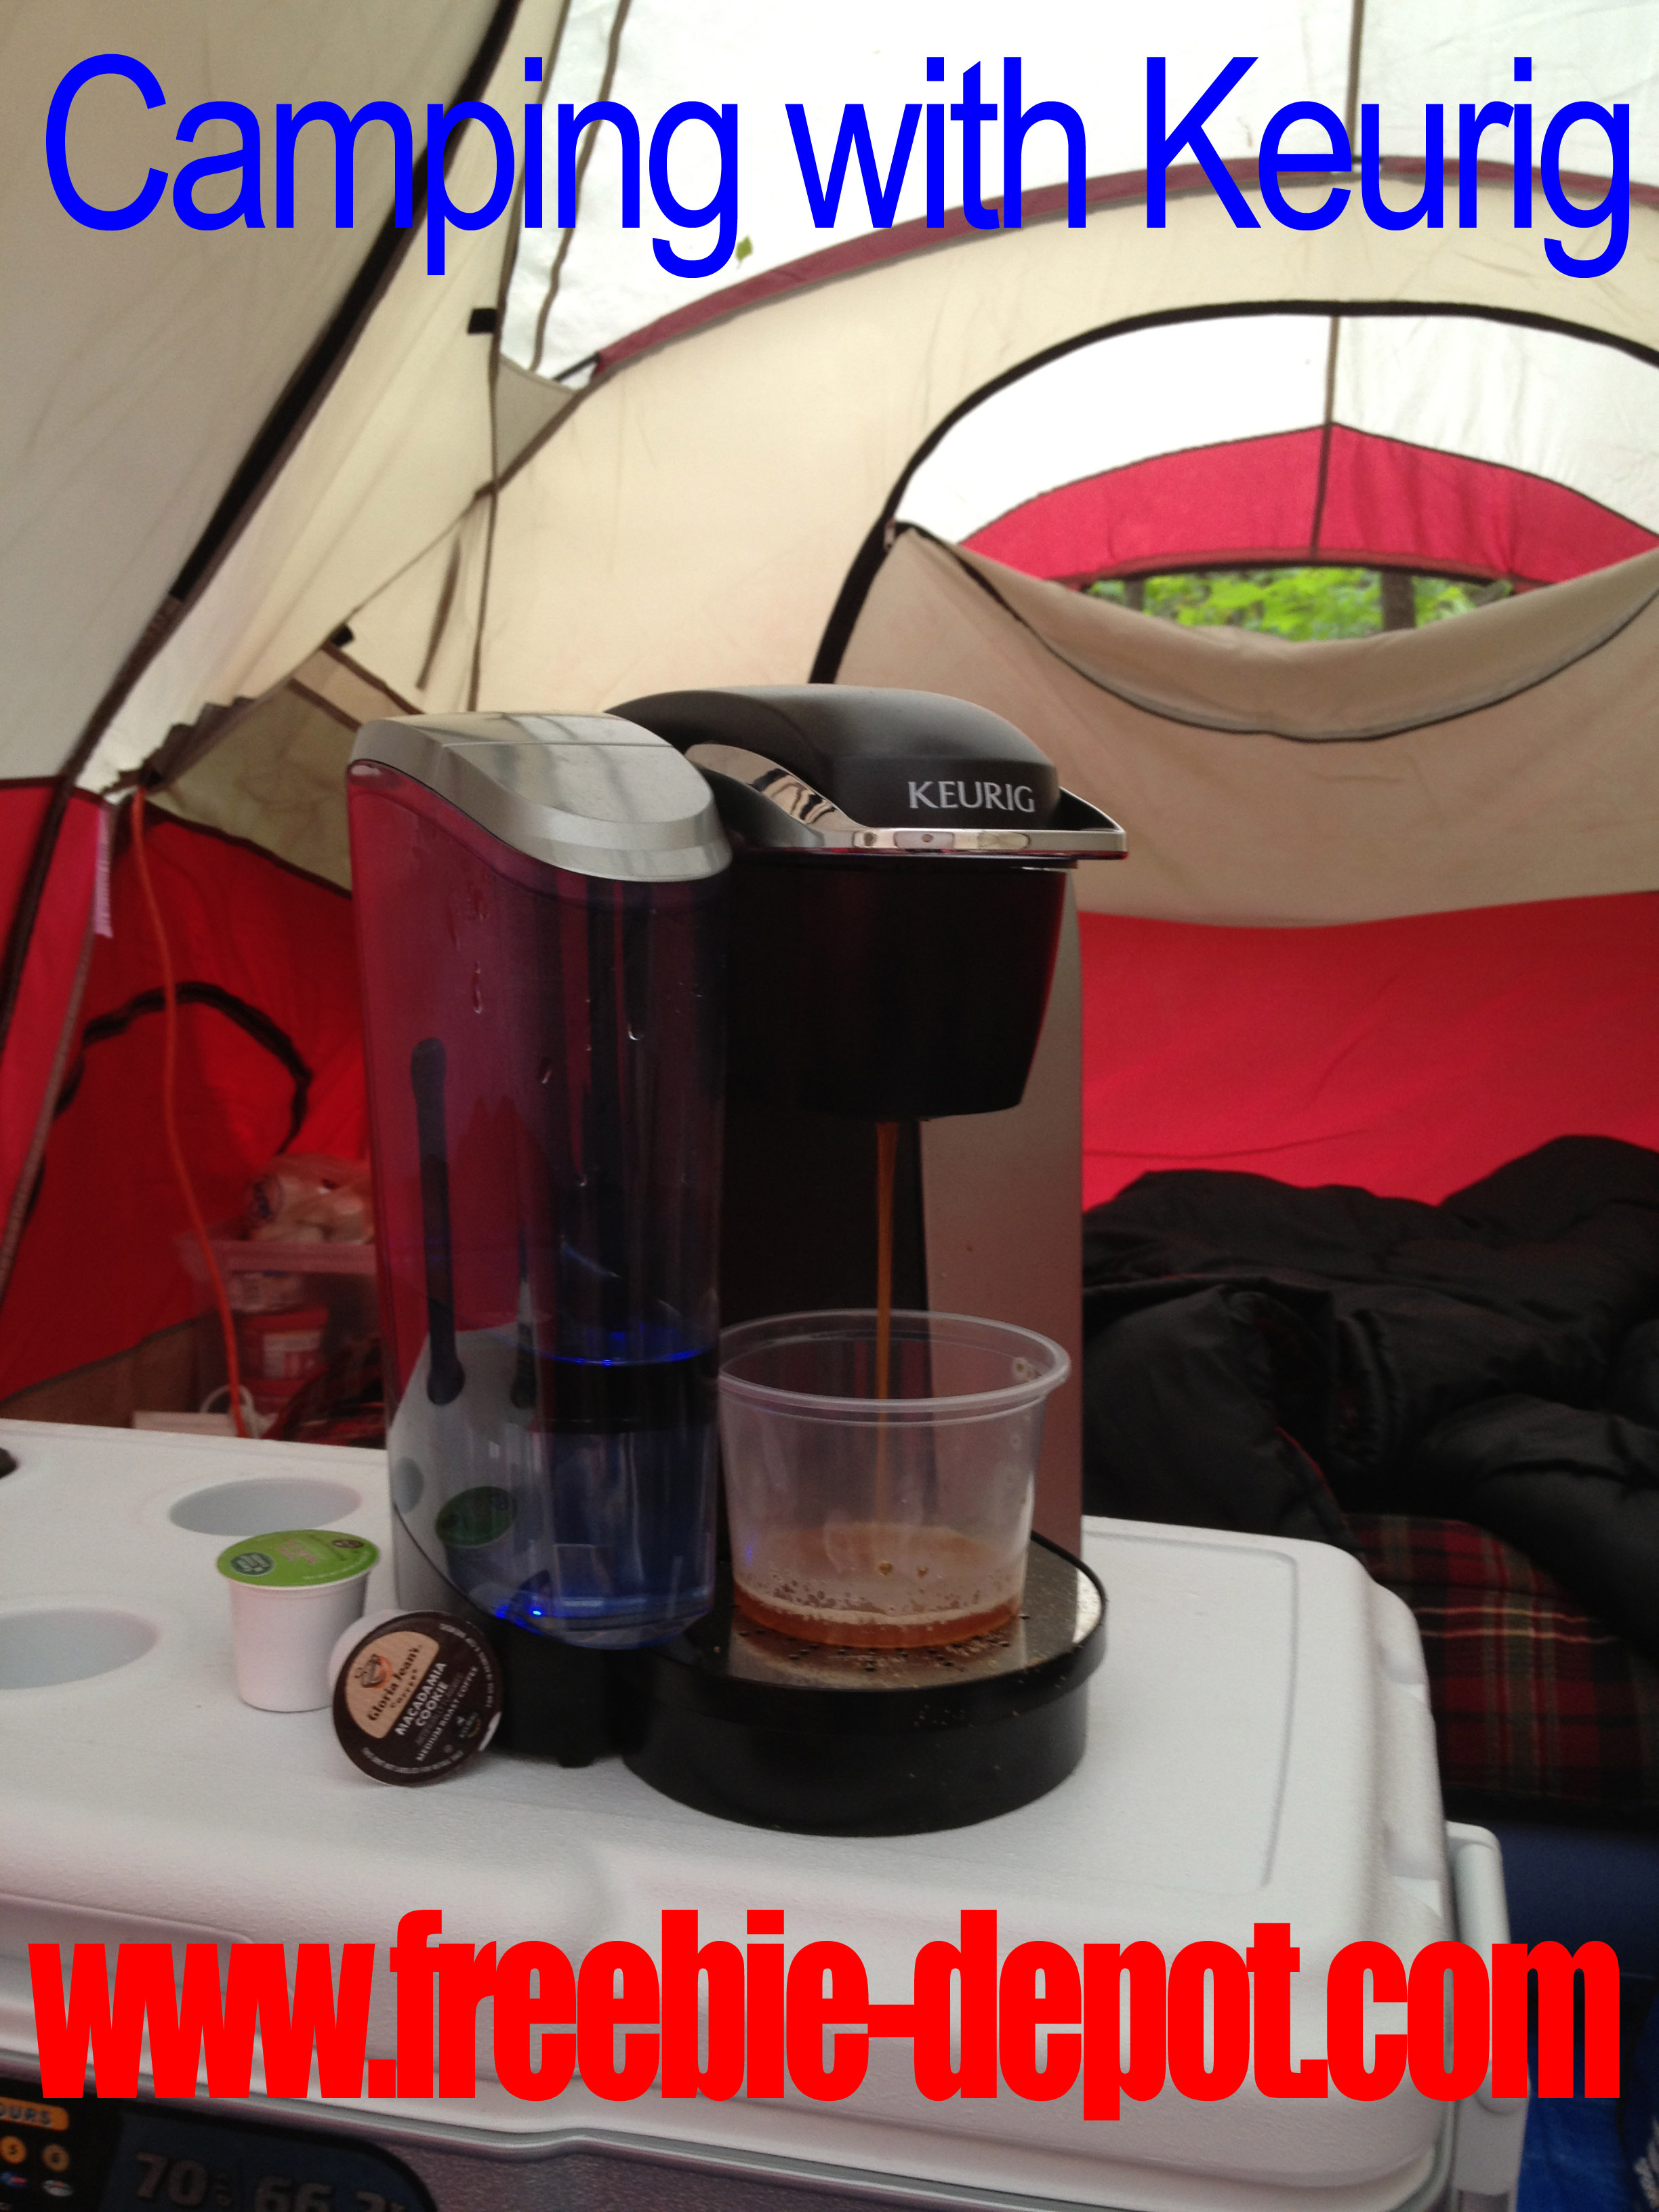 Camping with Keurig